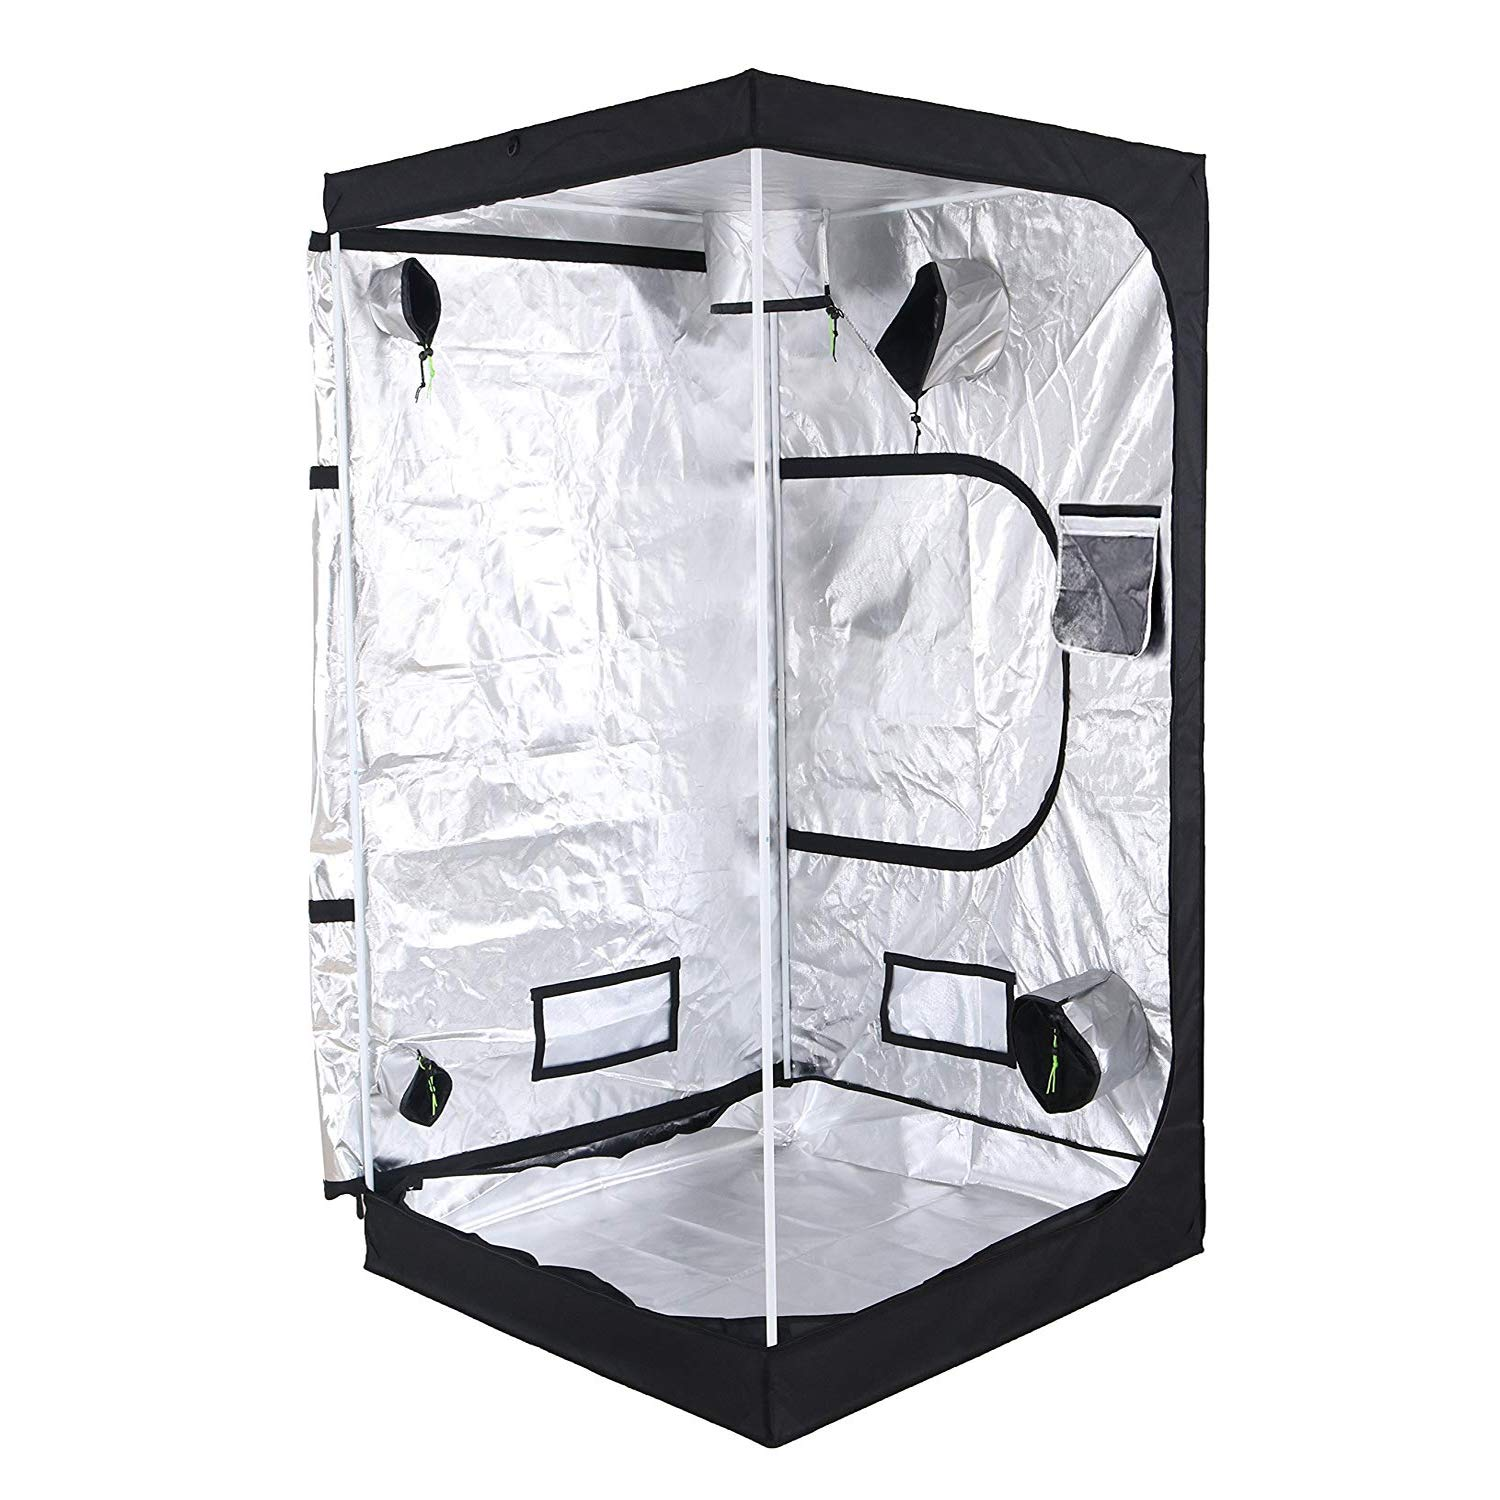 AIKI 40''x40''x80'' Reflective Mylar Hydroponic Grow Tent with Observation Window and Waterproof Floor Tray for Indoor Plant Growing 3x3 by AIKI (Image #3)